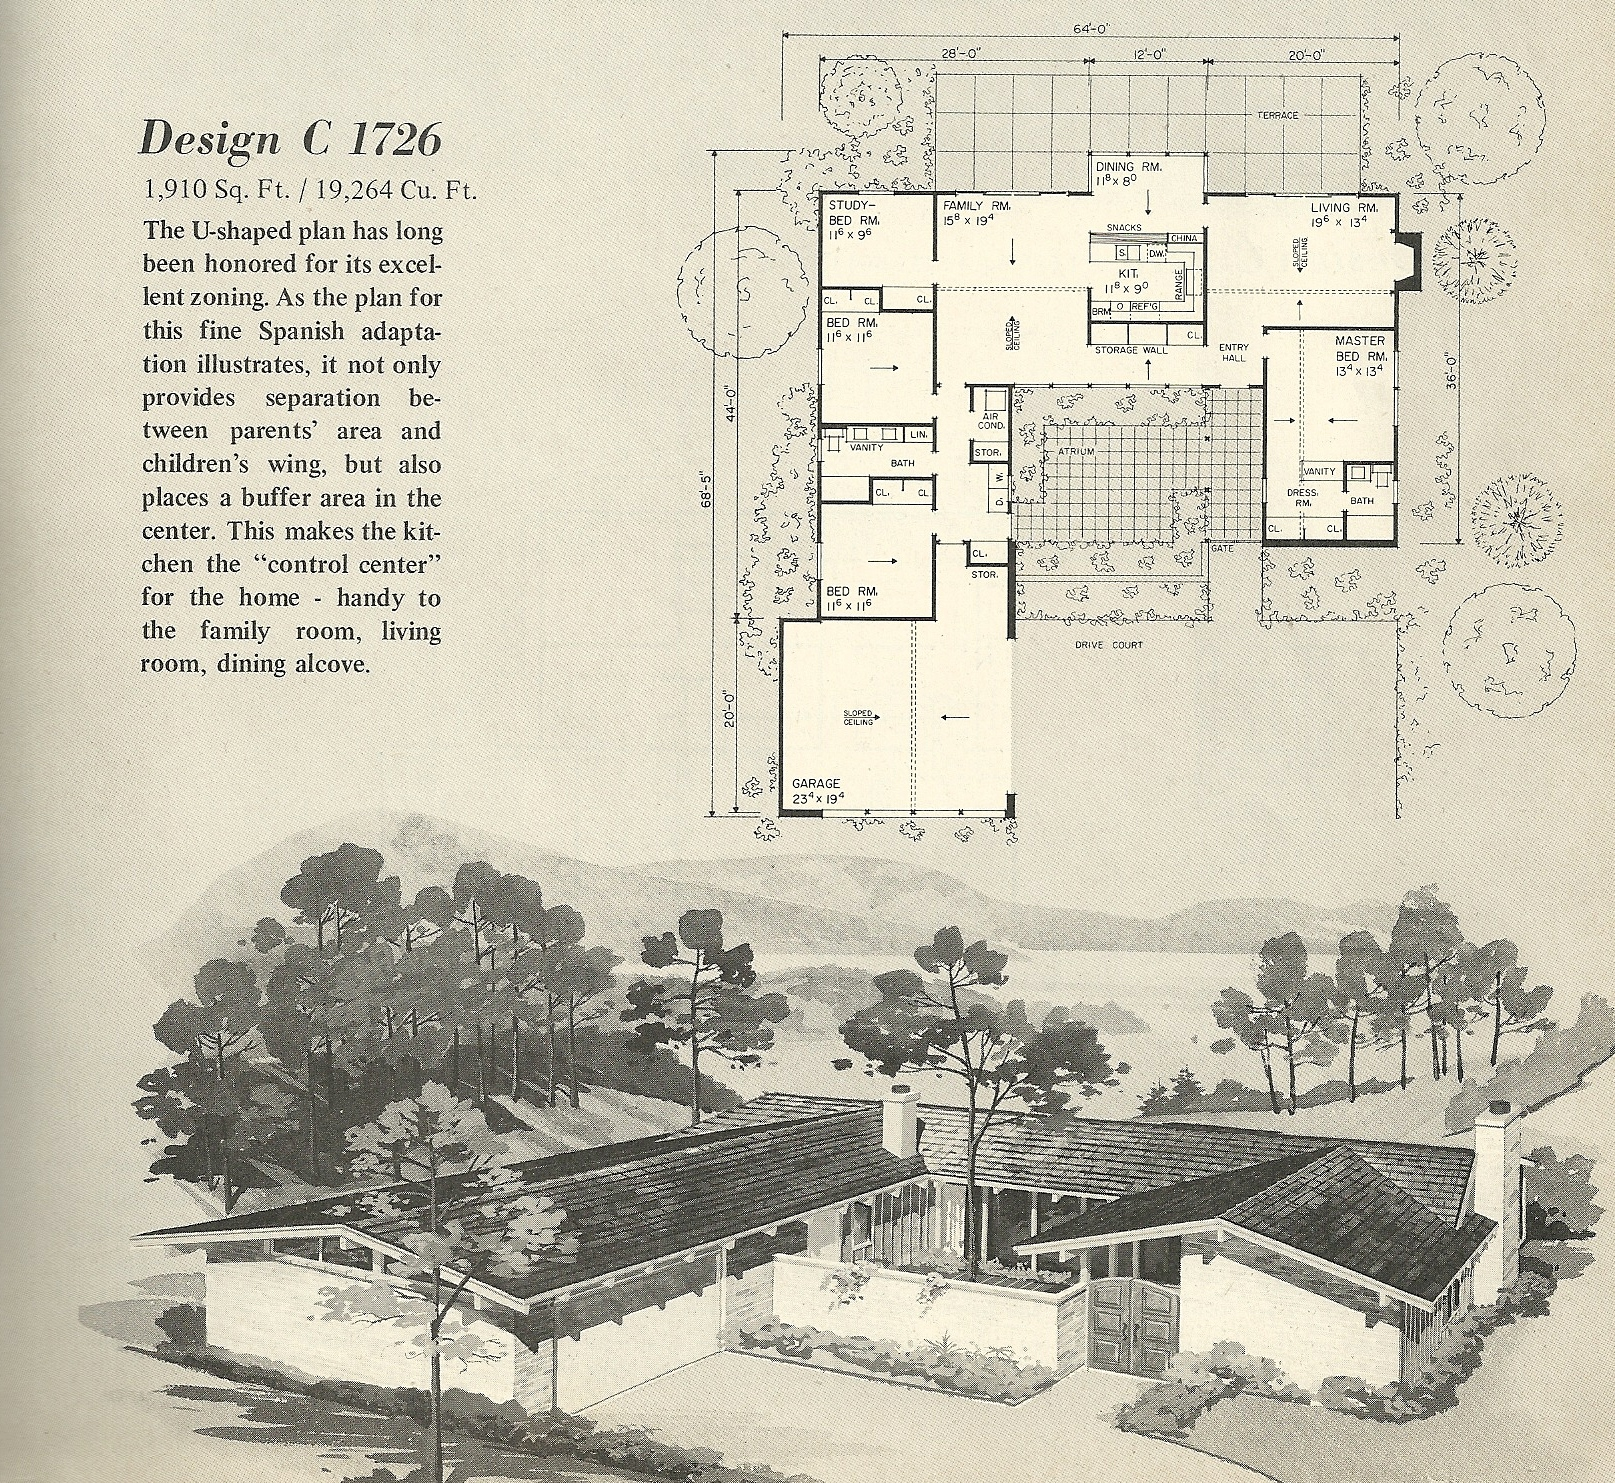 Vintage house plans 1726 antique alter ego for Mid century modern house plan